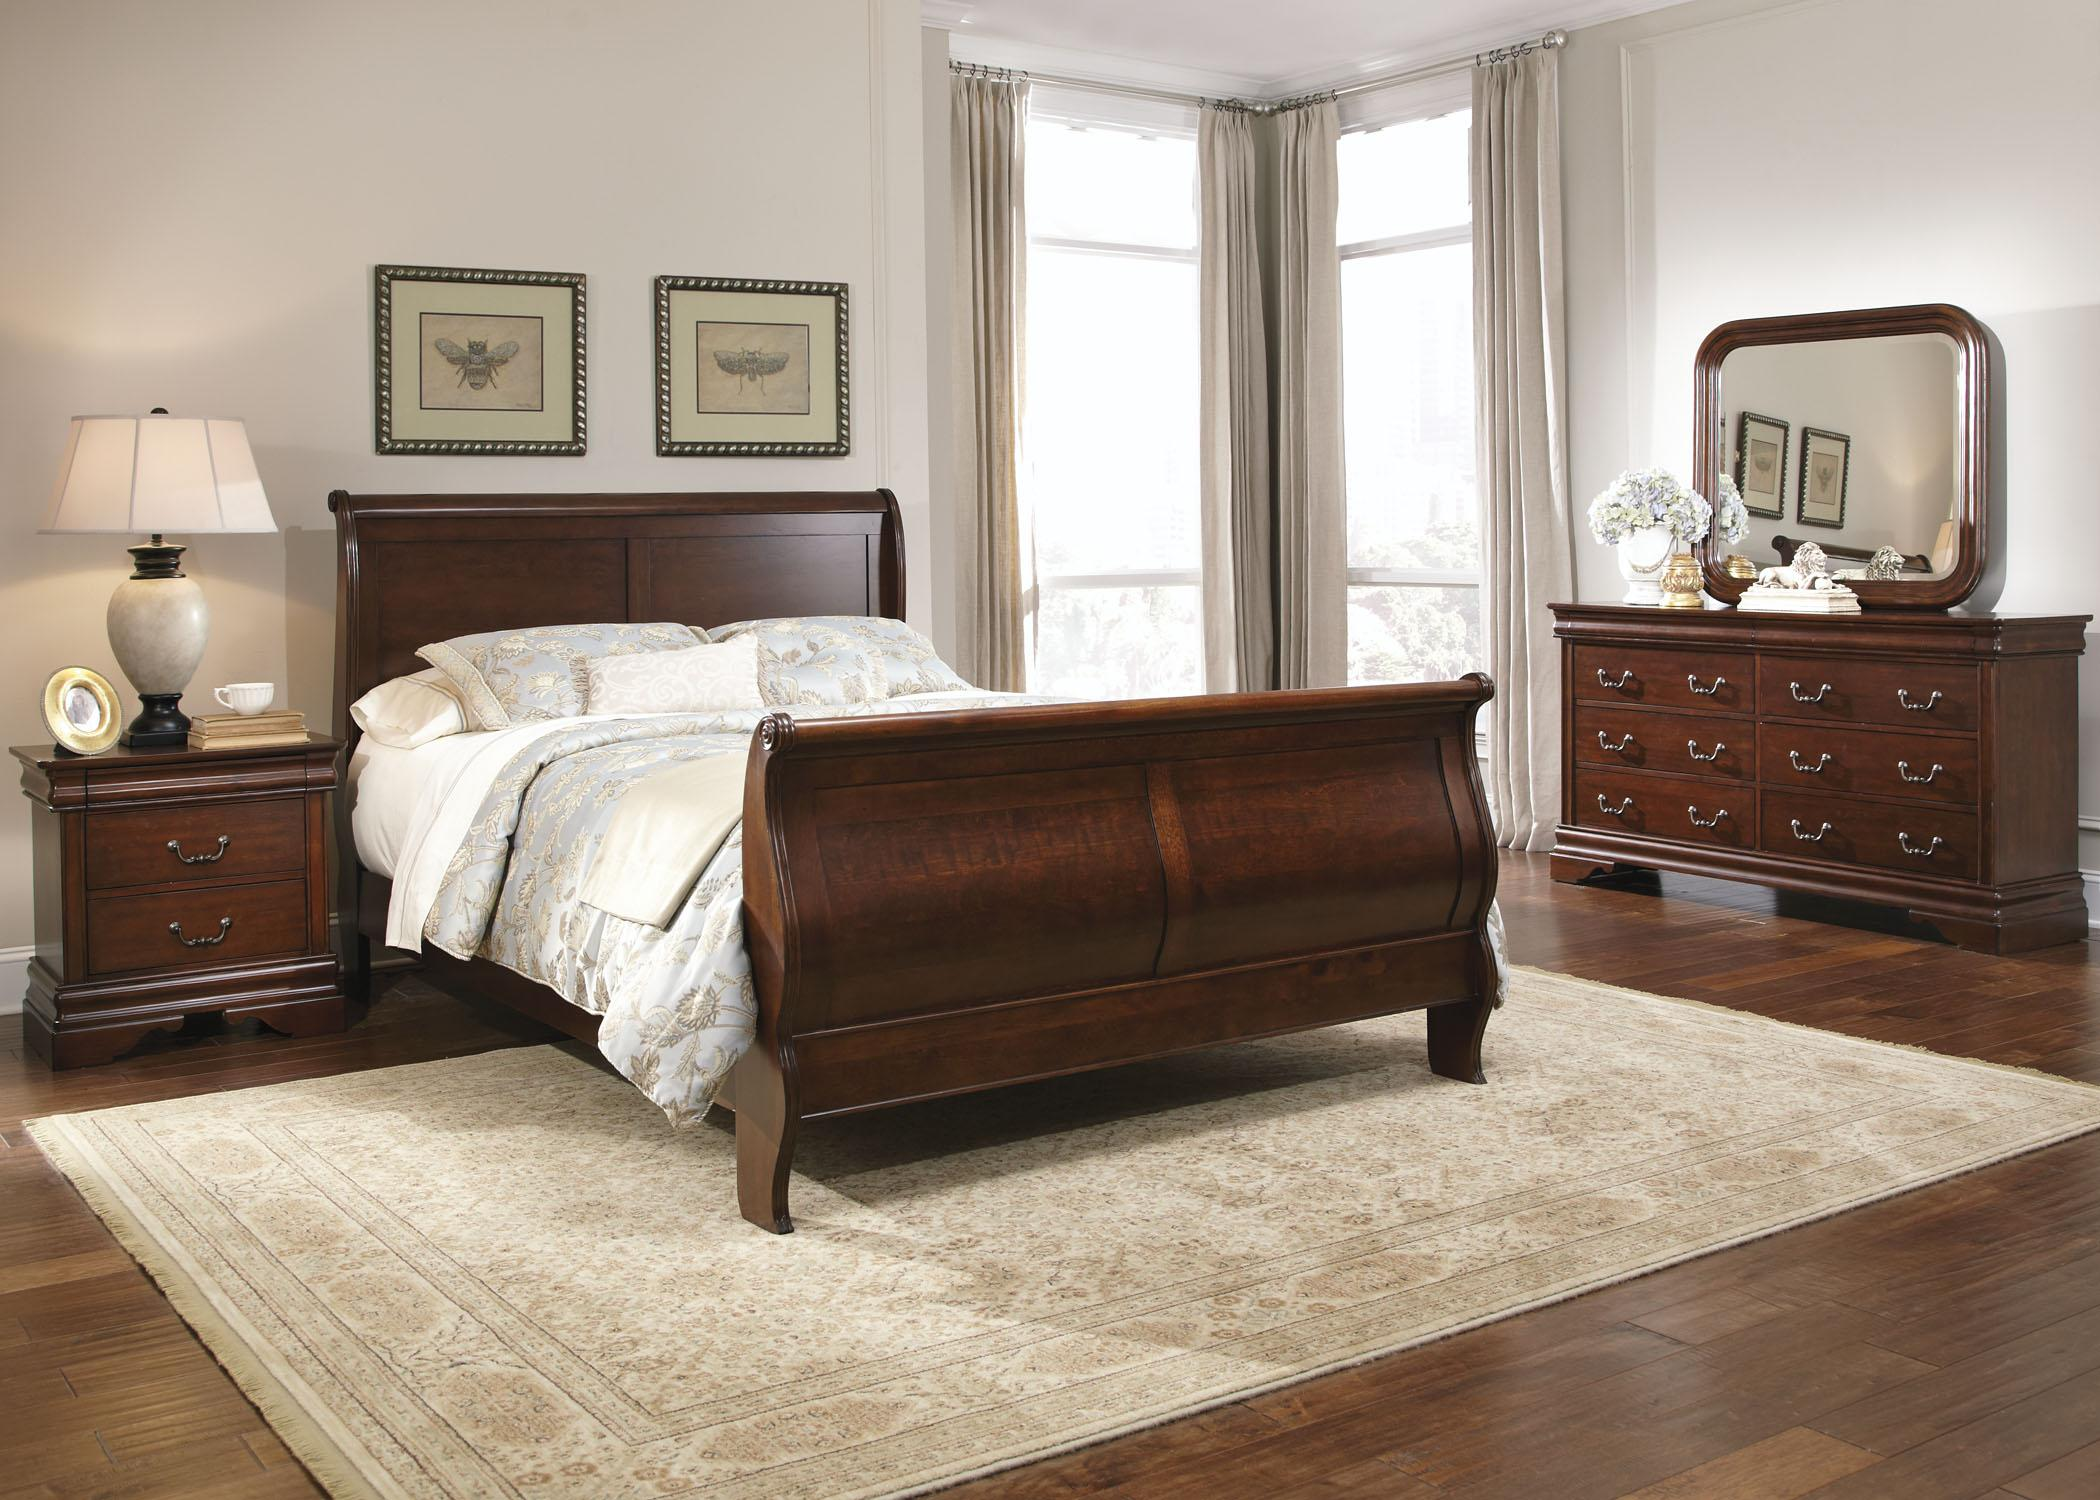 sleigh bed furniture. Queen Sleigh Bed Furniture